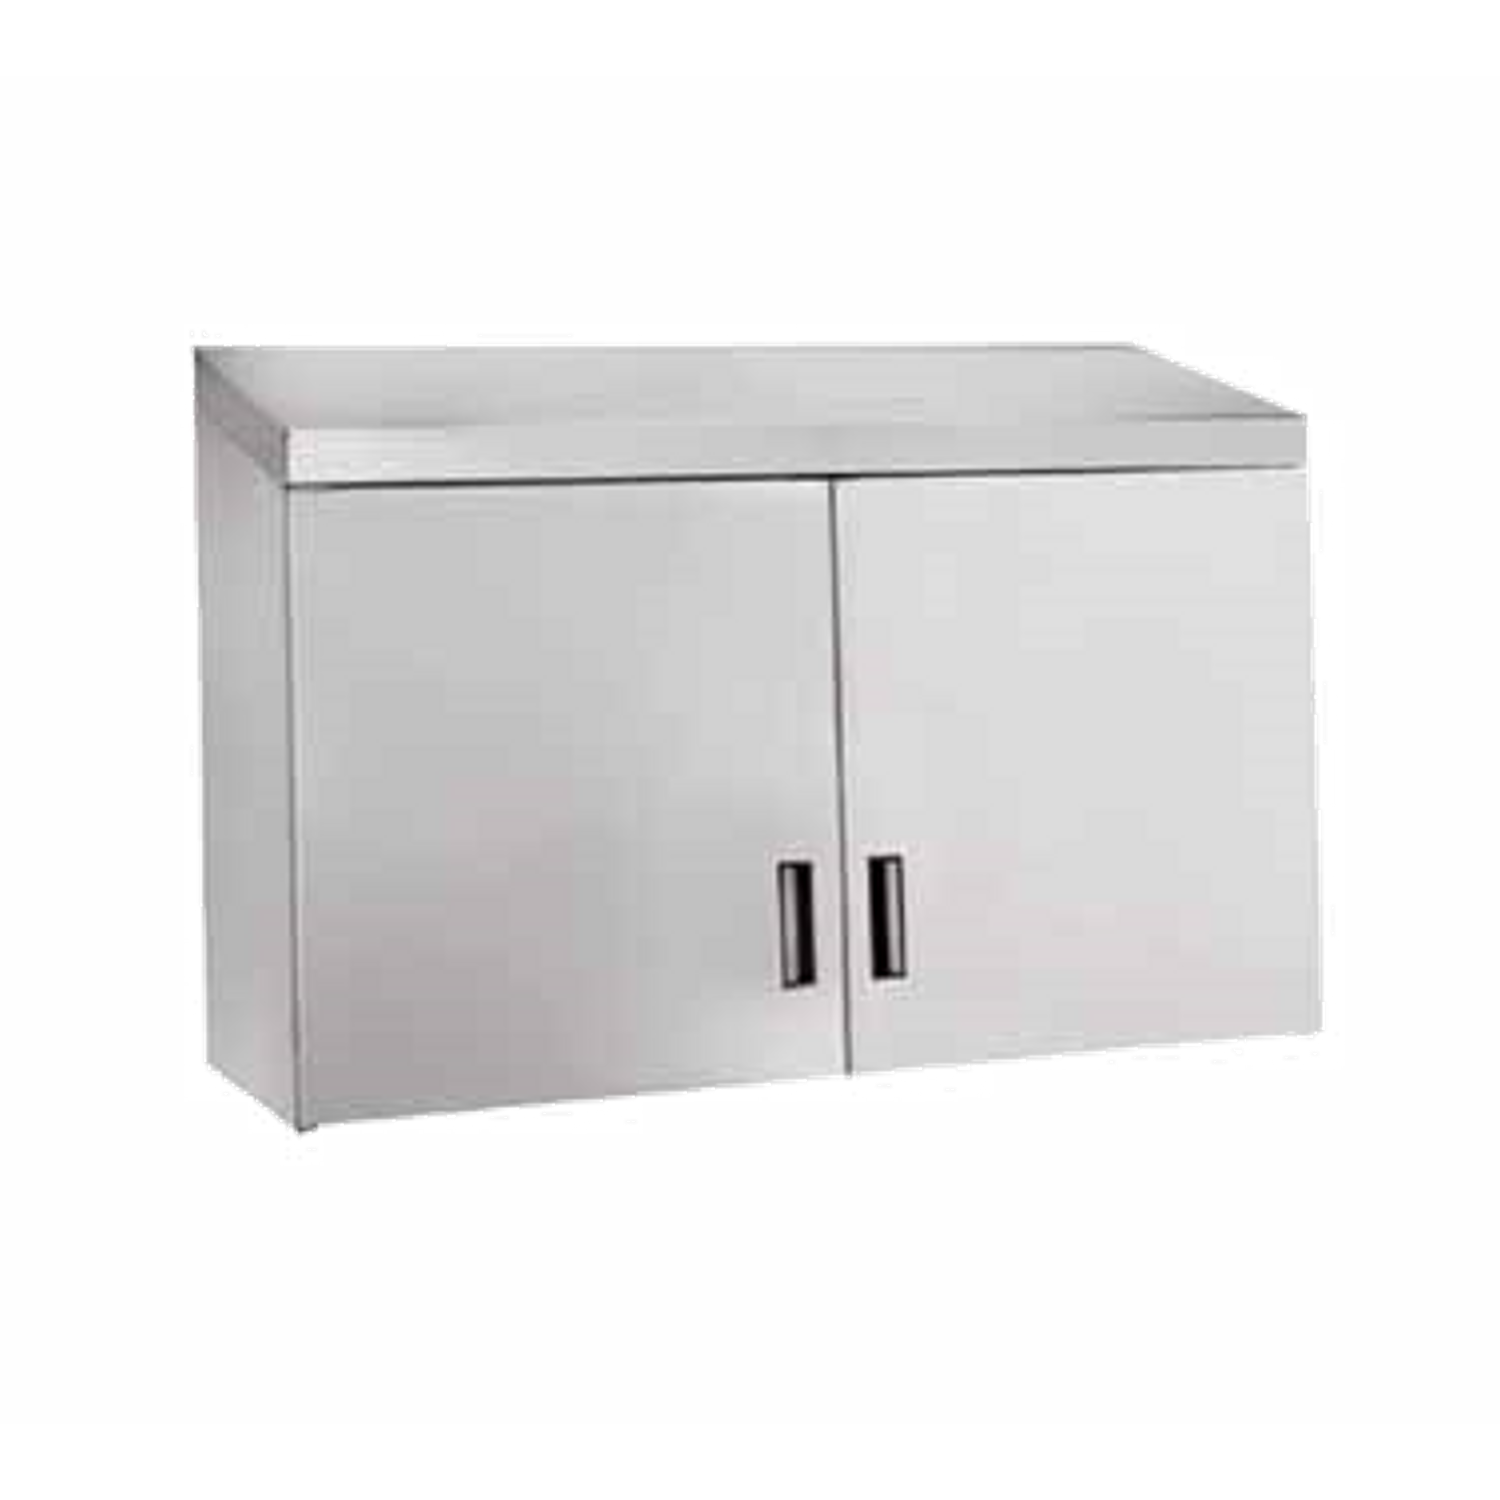 Advance Tabco Wch 15 60 Cabinet Wall Mount Enclosed Design